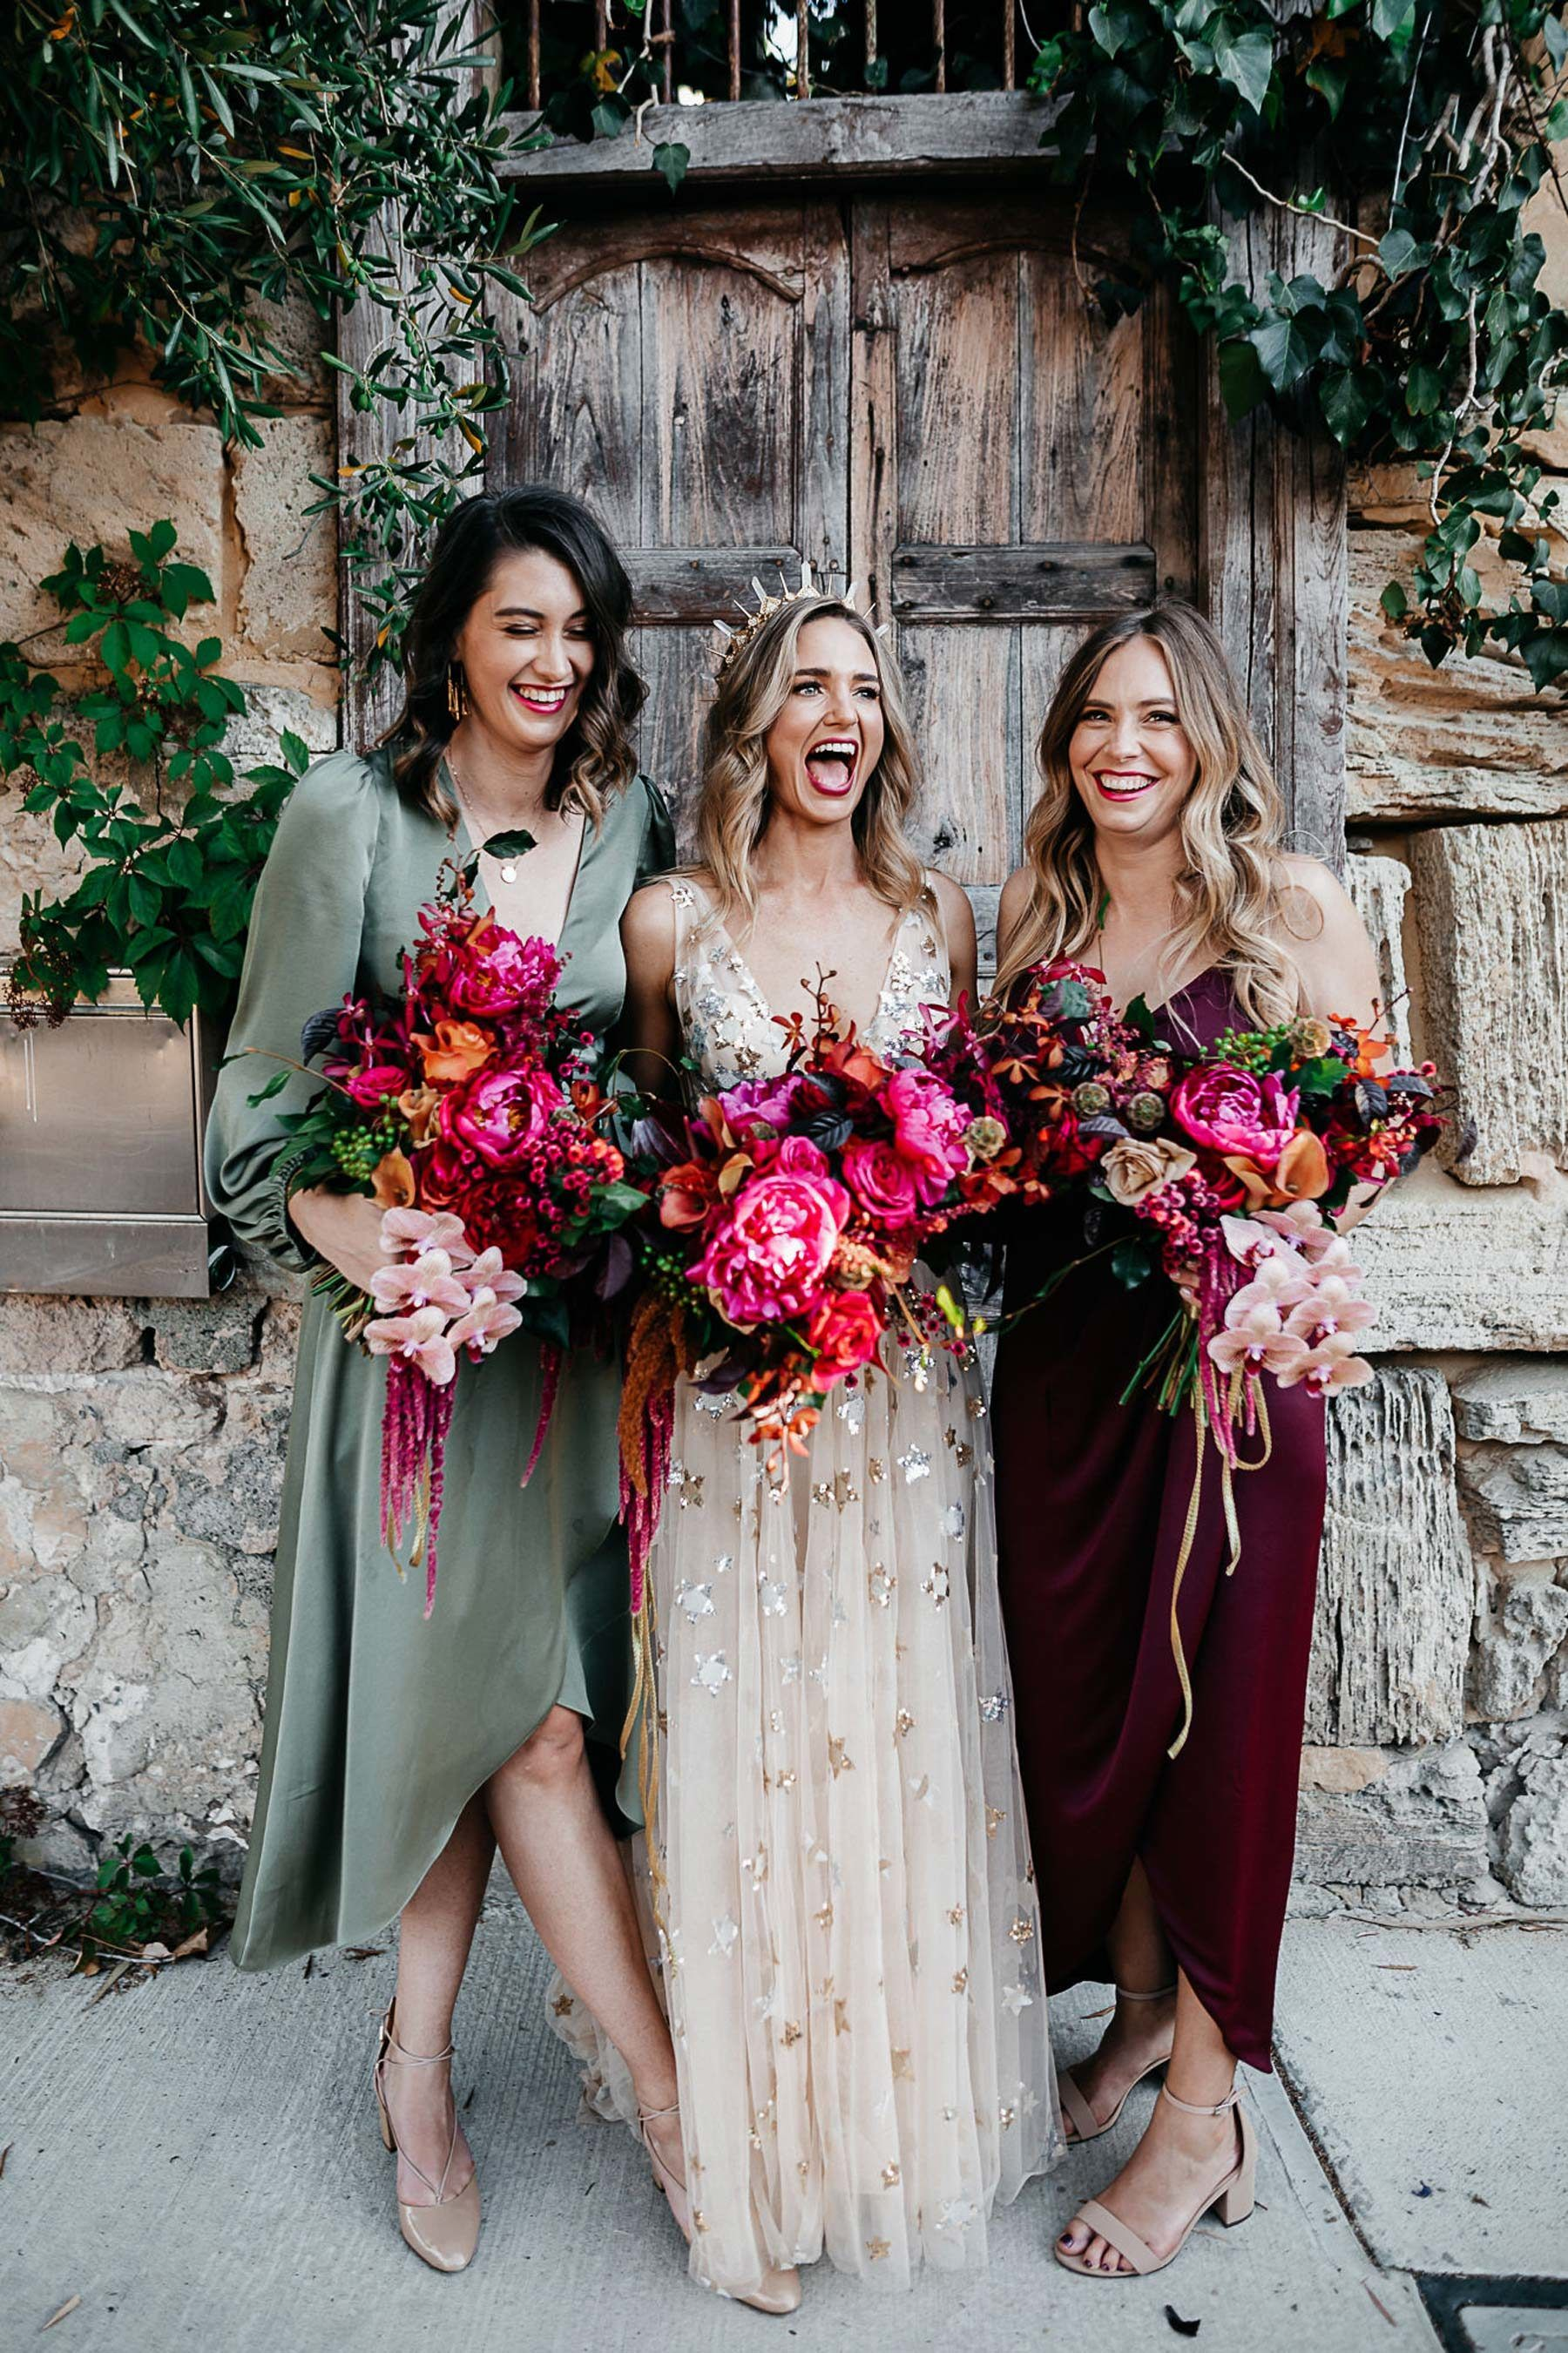 Felicity jakes vibrant fremantle wedding with a gold